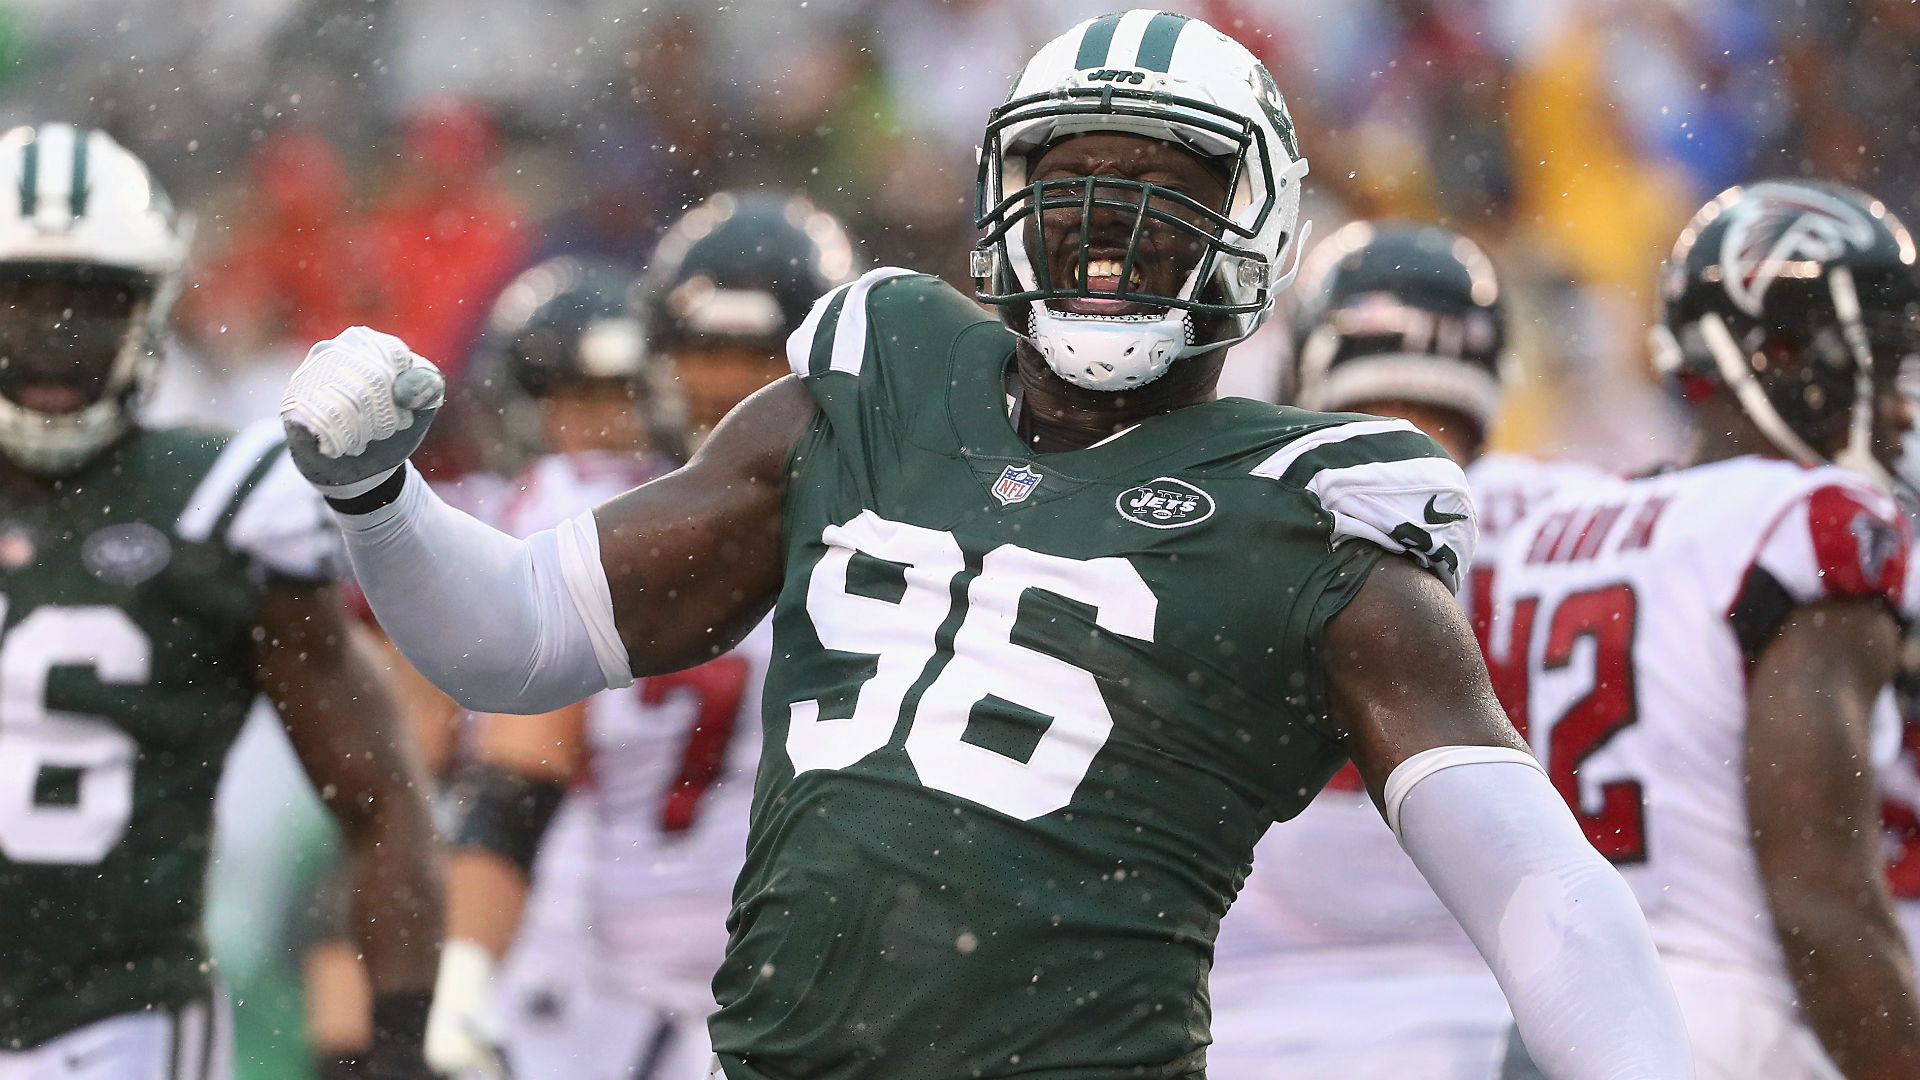 Muhammad Wilkerson staying home this weekend due to coach's decision